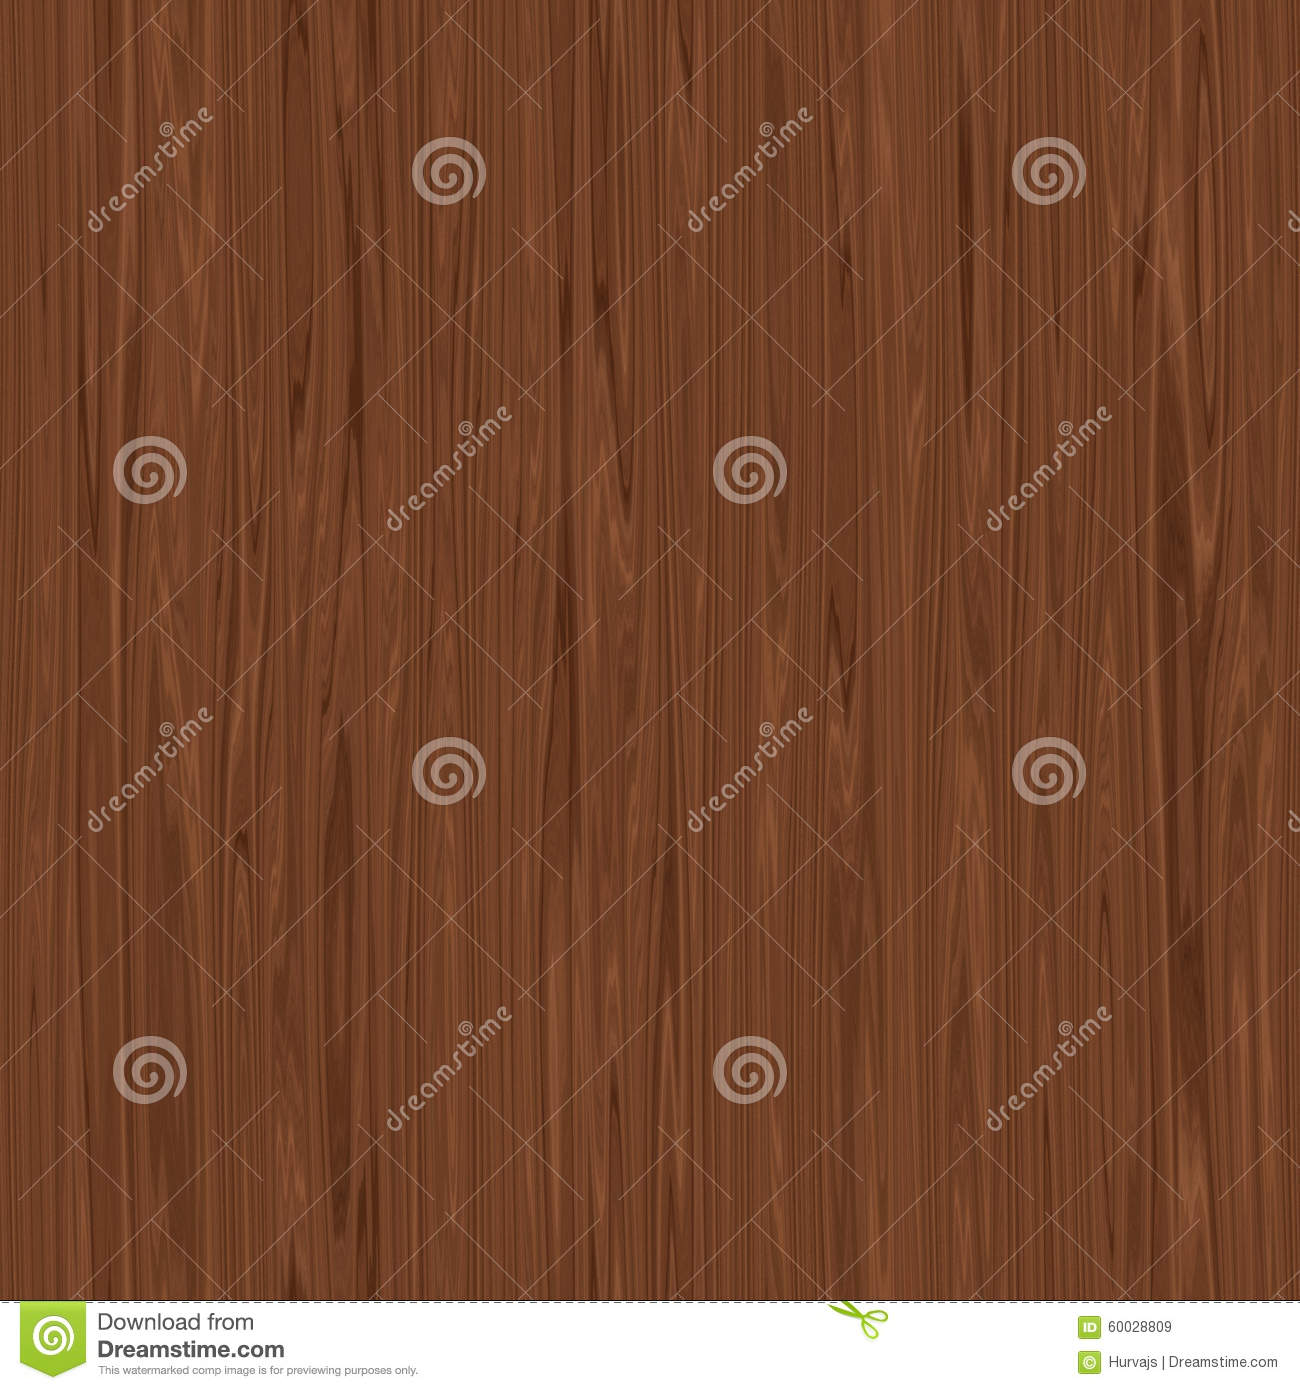 Download Seamless Dark Wood Texture Or Background Stock Illustration